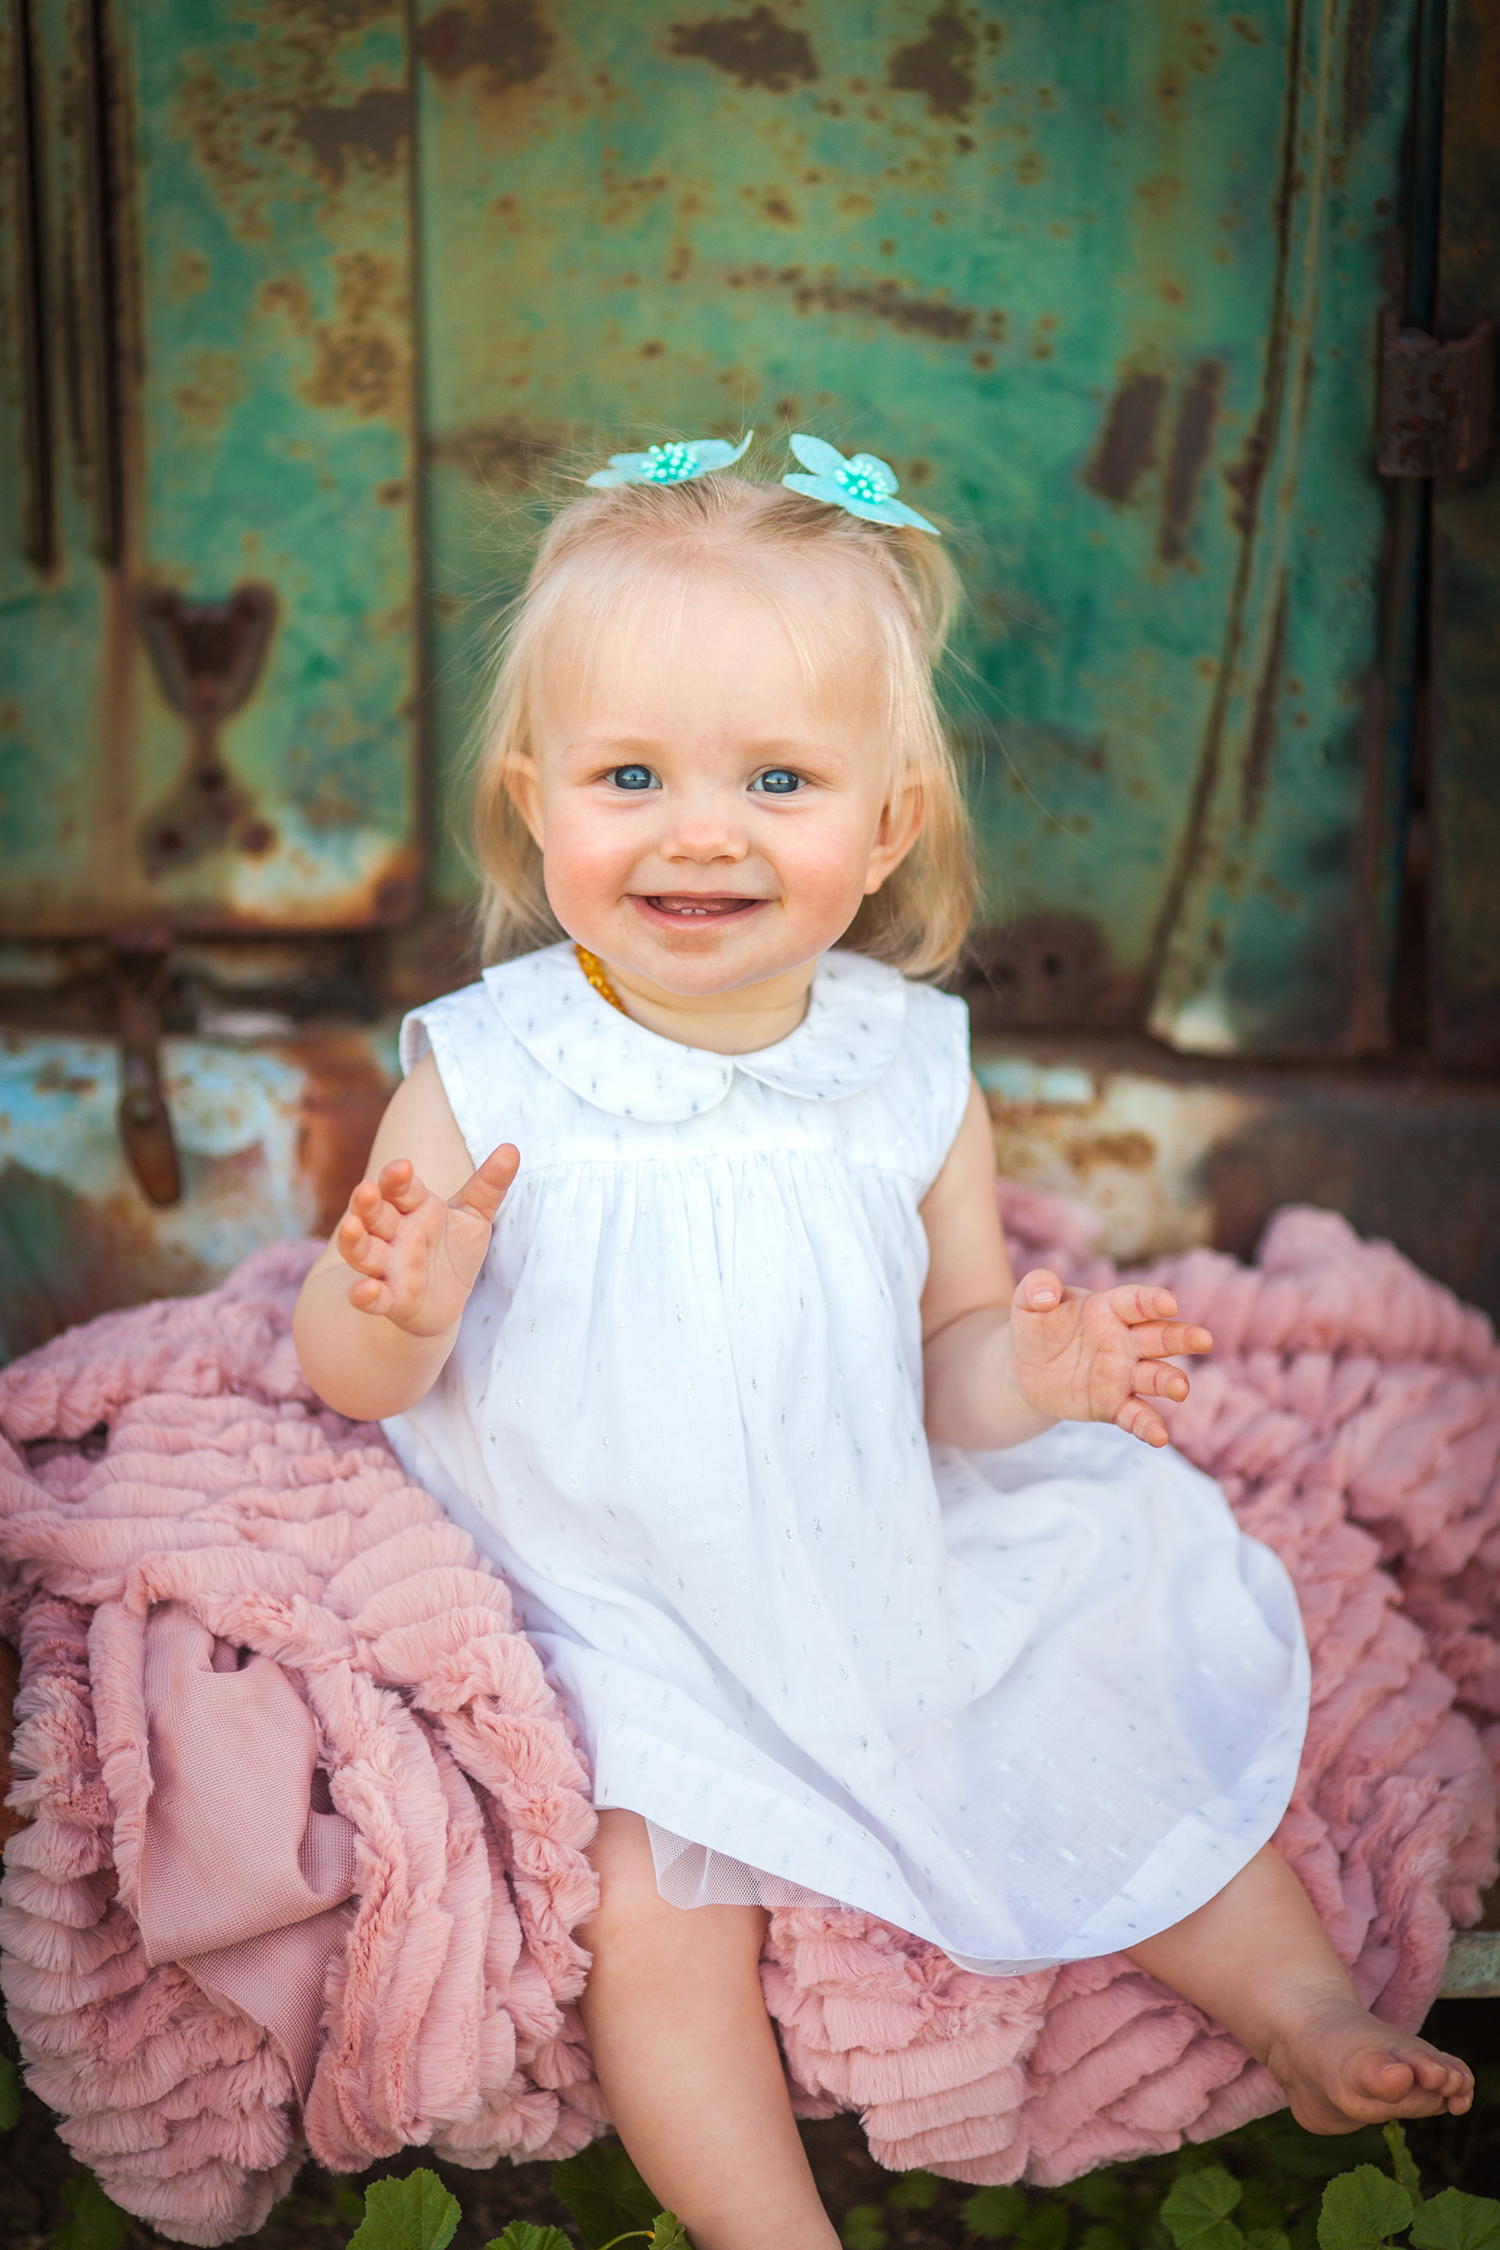 Dena_Rooney_baby photographer_0020.jpg